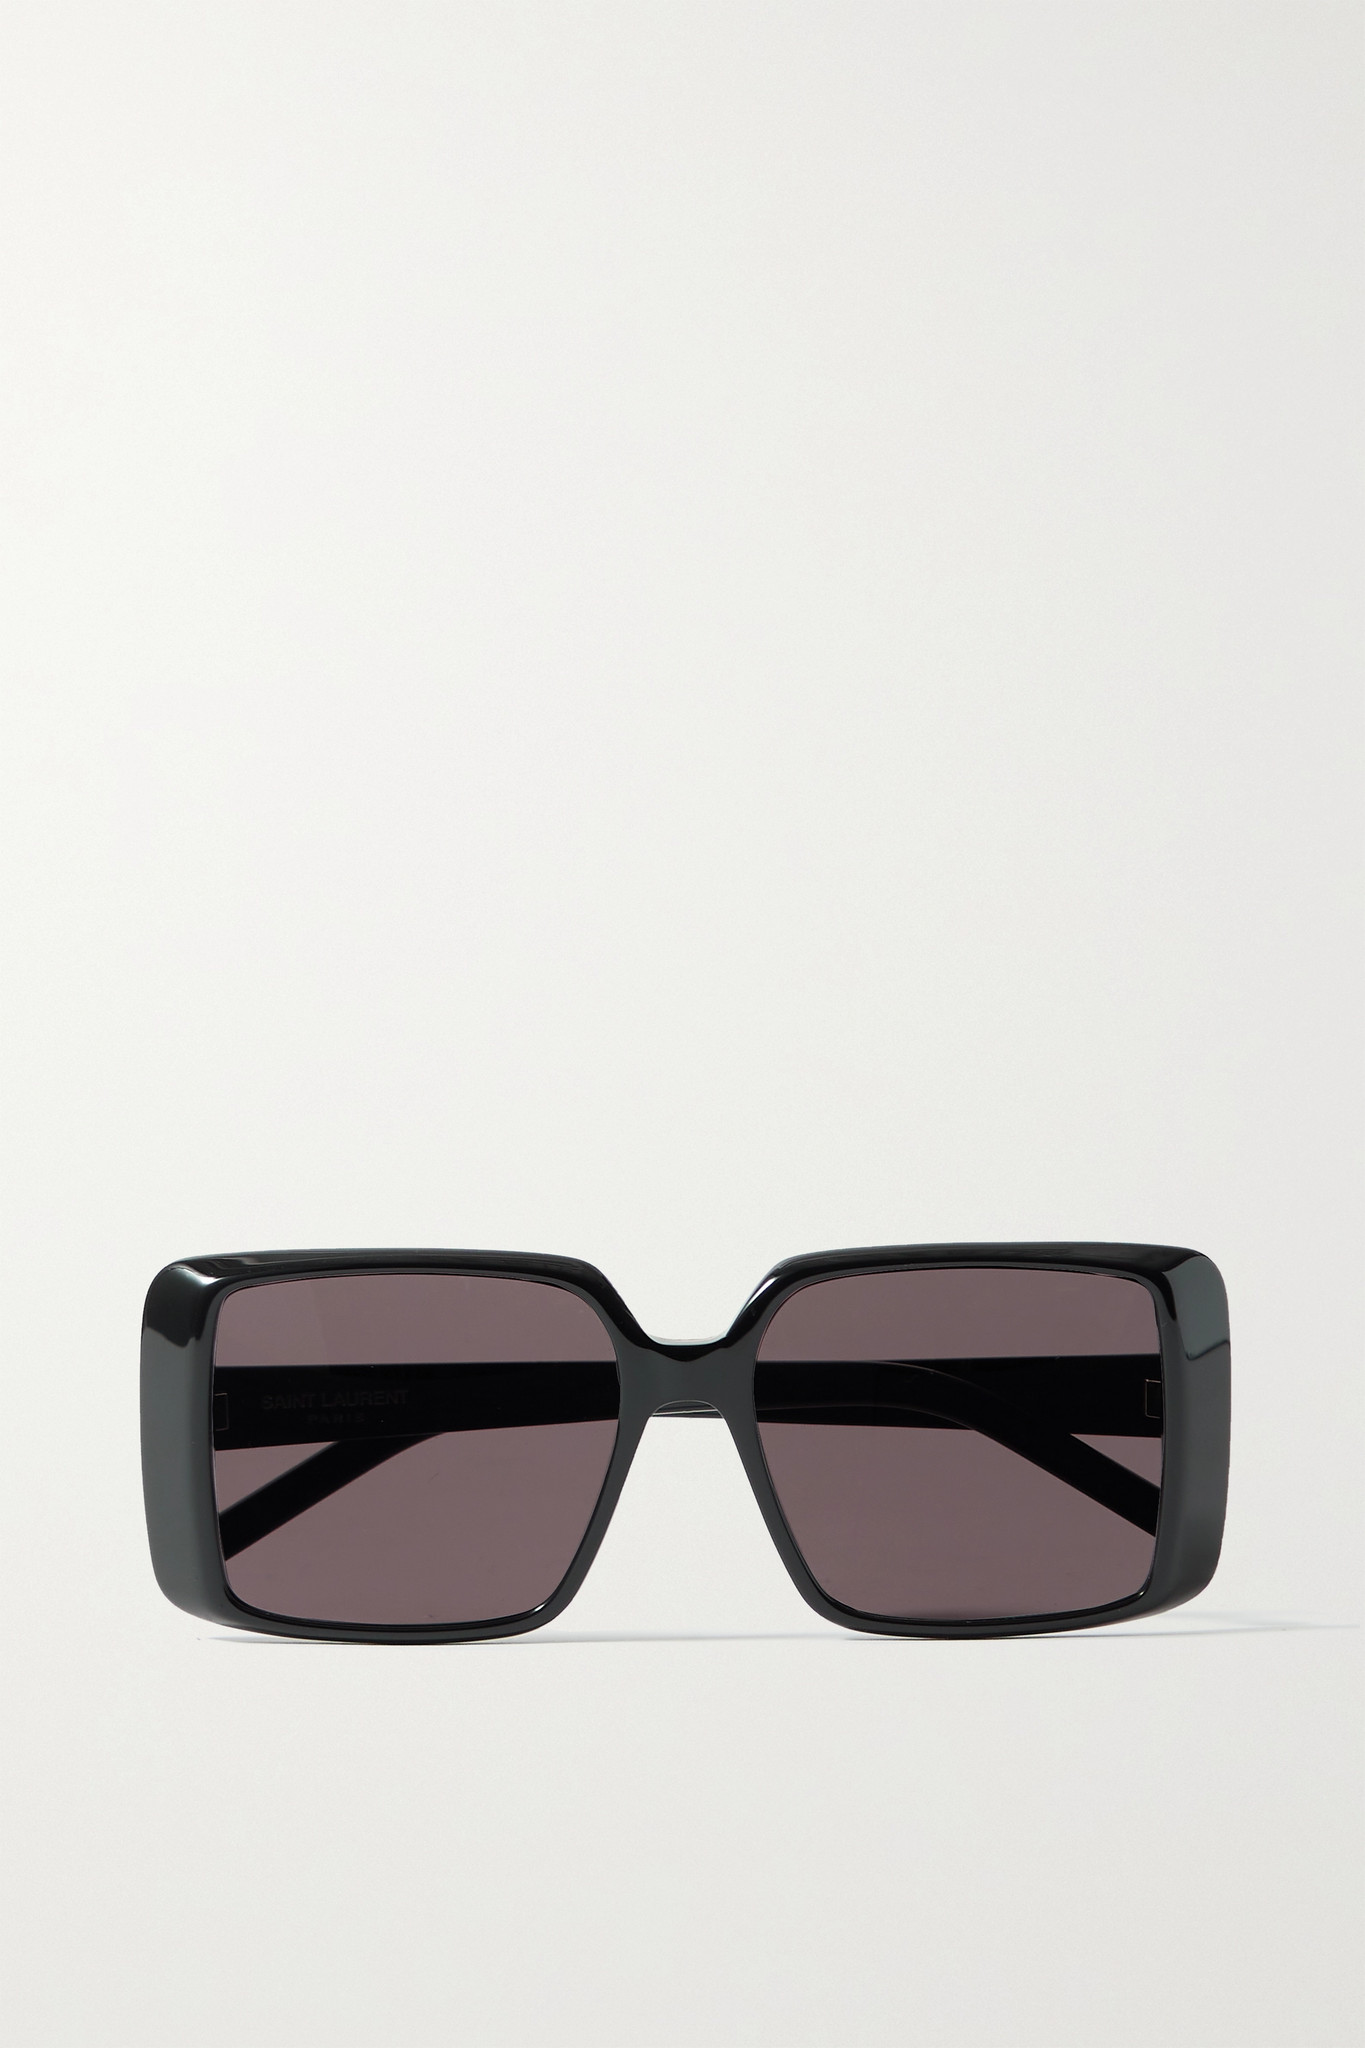 SAINT LAURENT - Square-frame Acetate Sunglasses - Black - one size